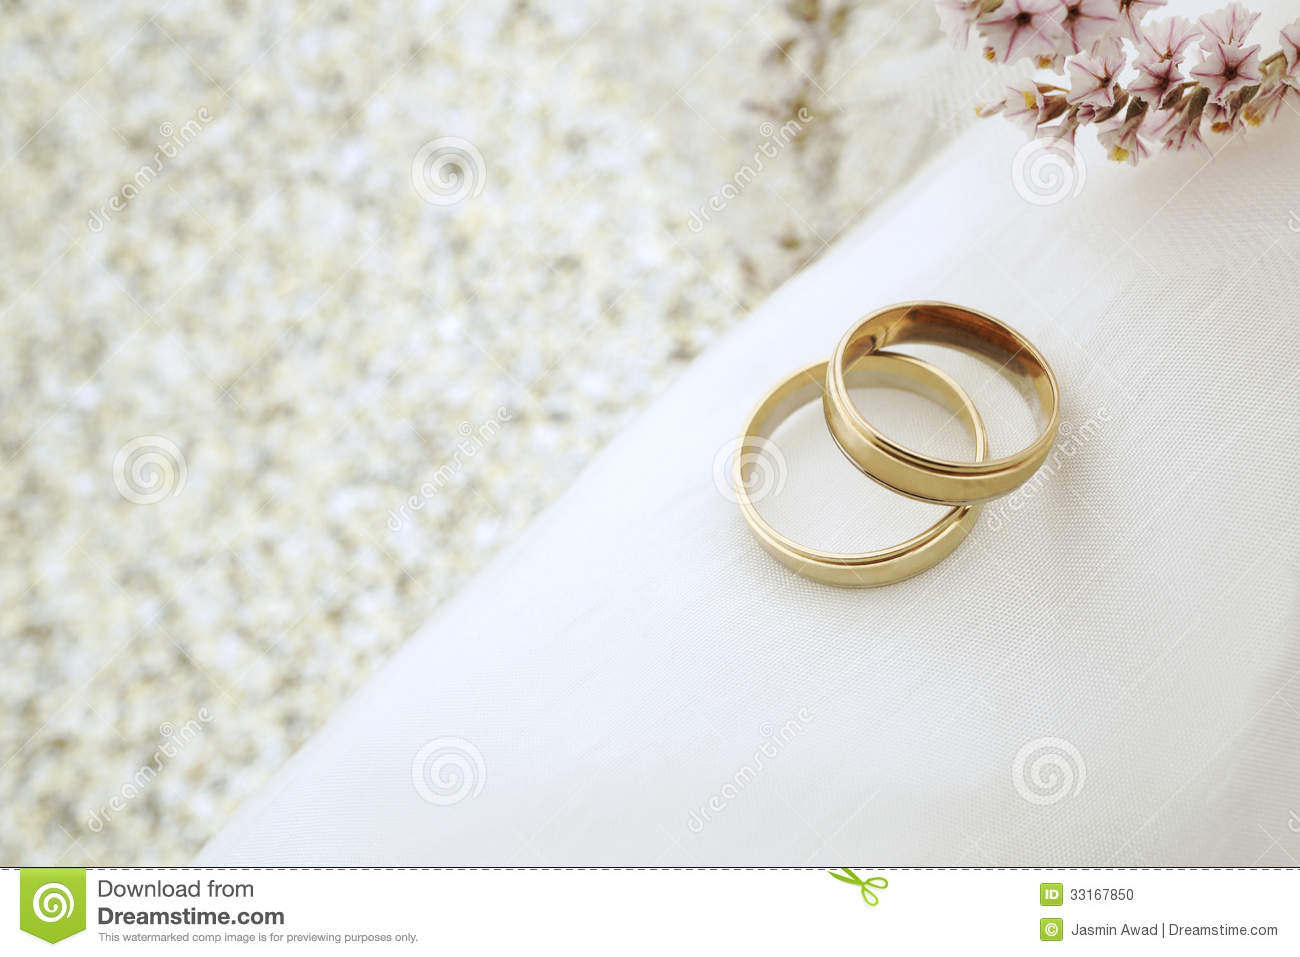 Wedding Invite With Gold Rings Stock Photo Image of wedding white